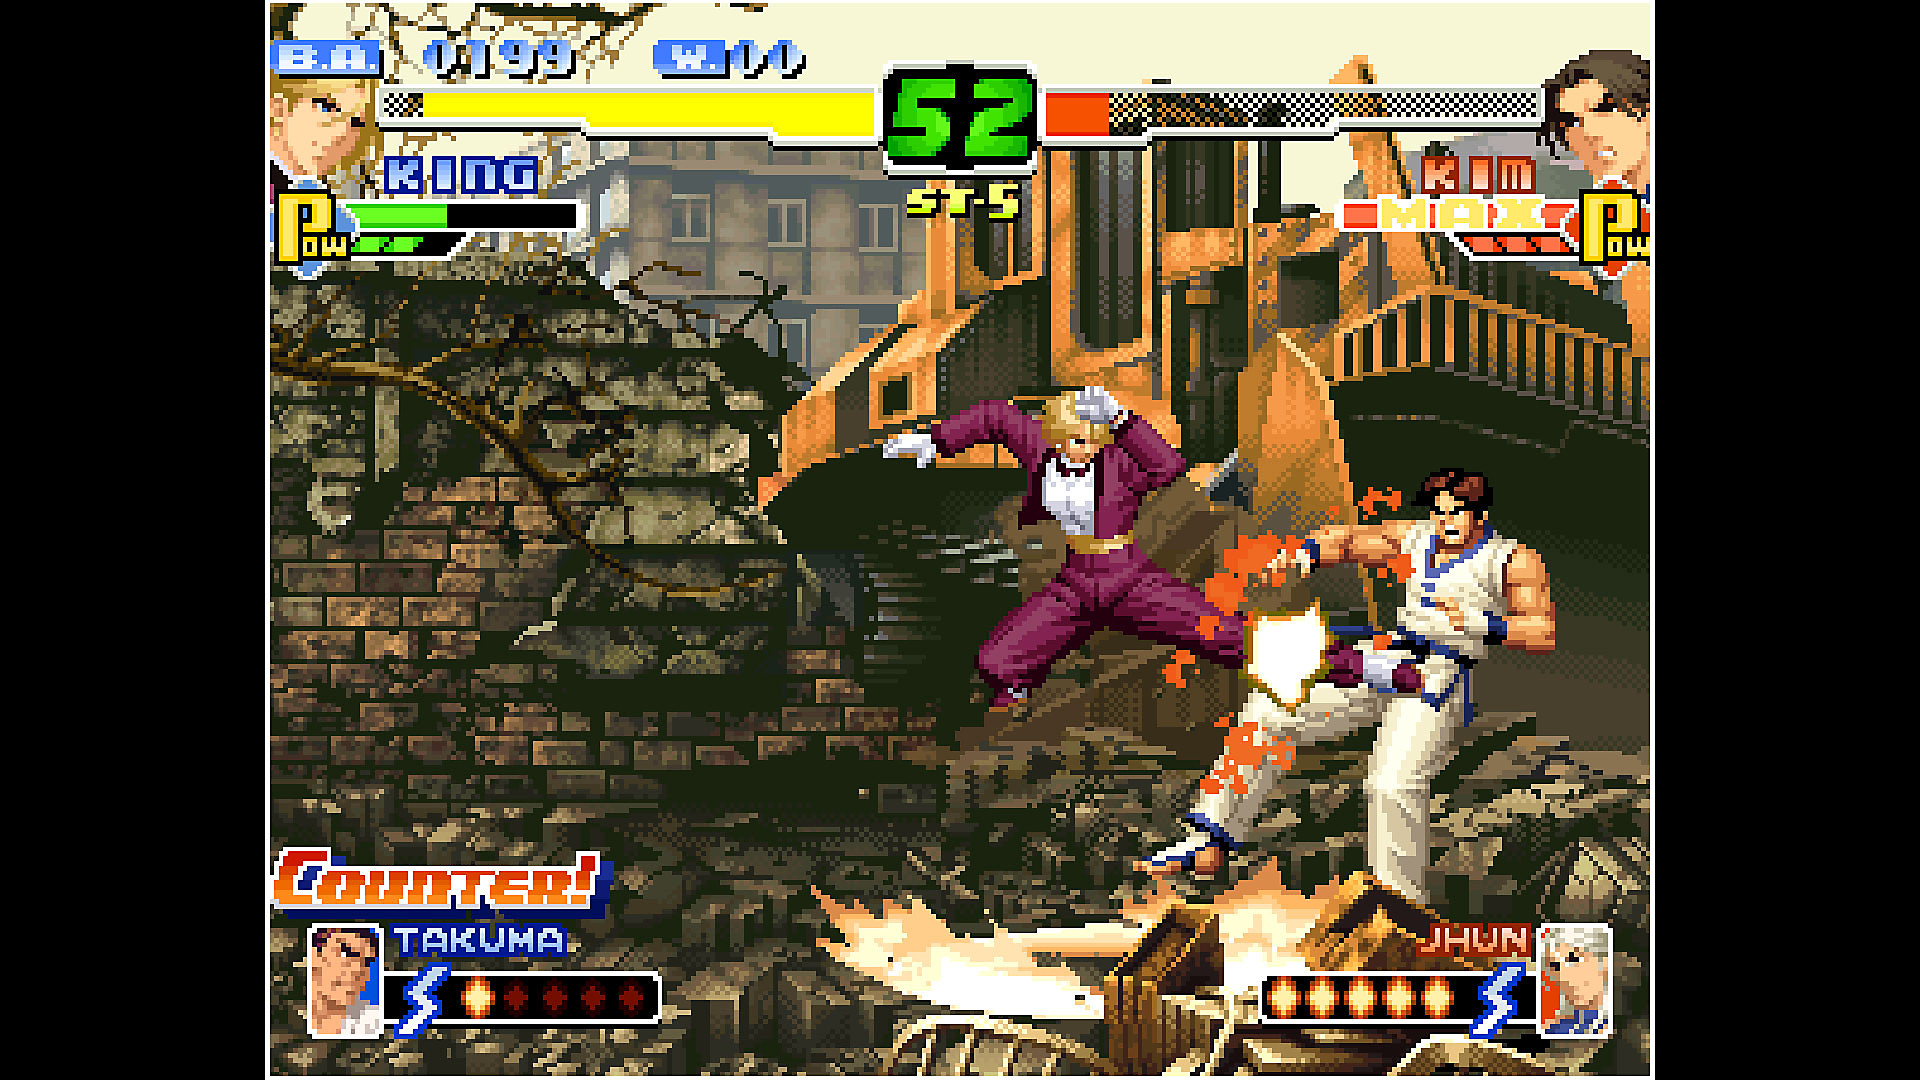 ACA NEOGEO THE KING OF FIGHTERS 2000 Gameplay